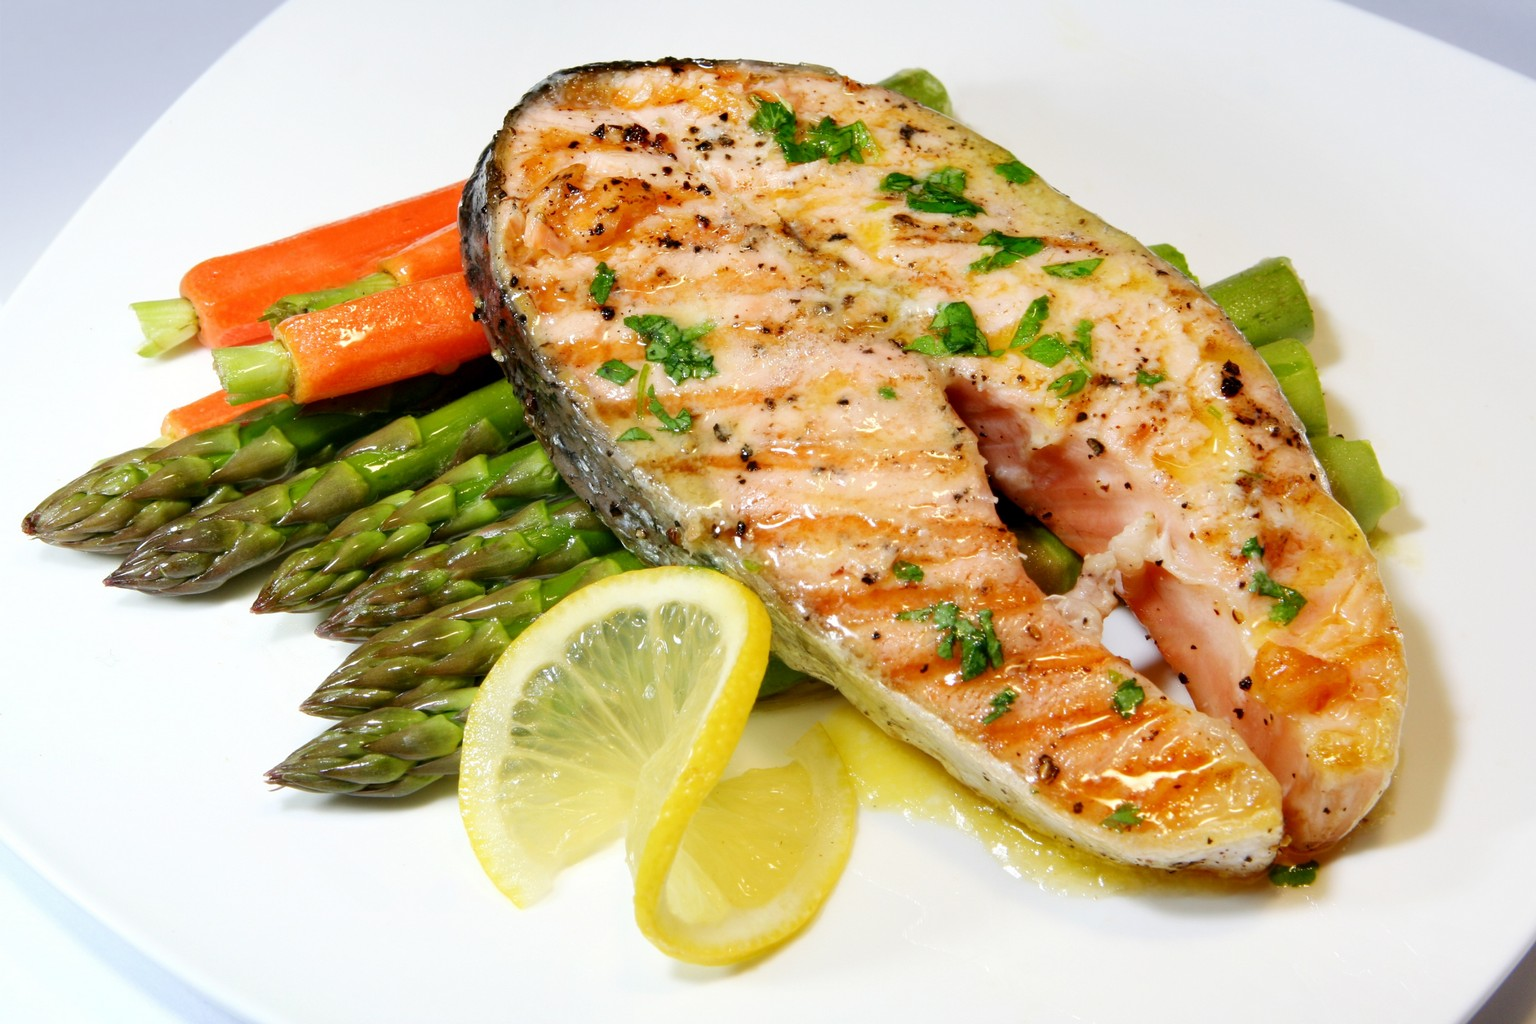 Fish benefits for women's beauty and health